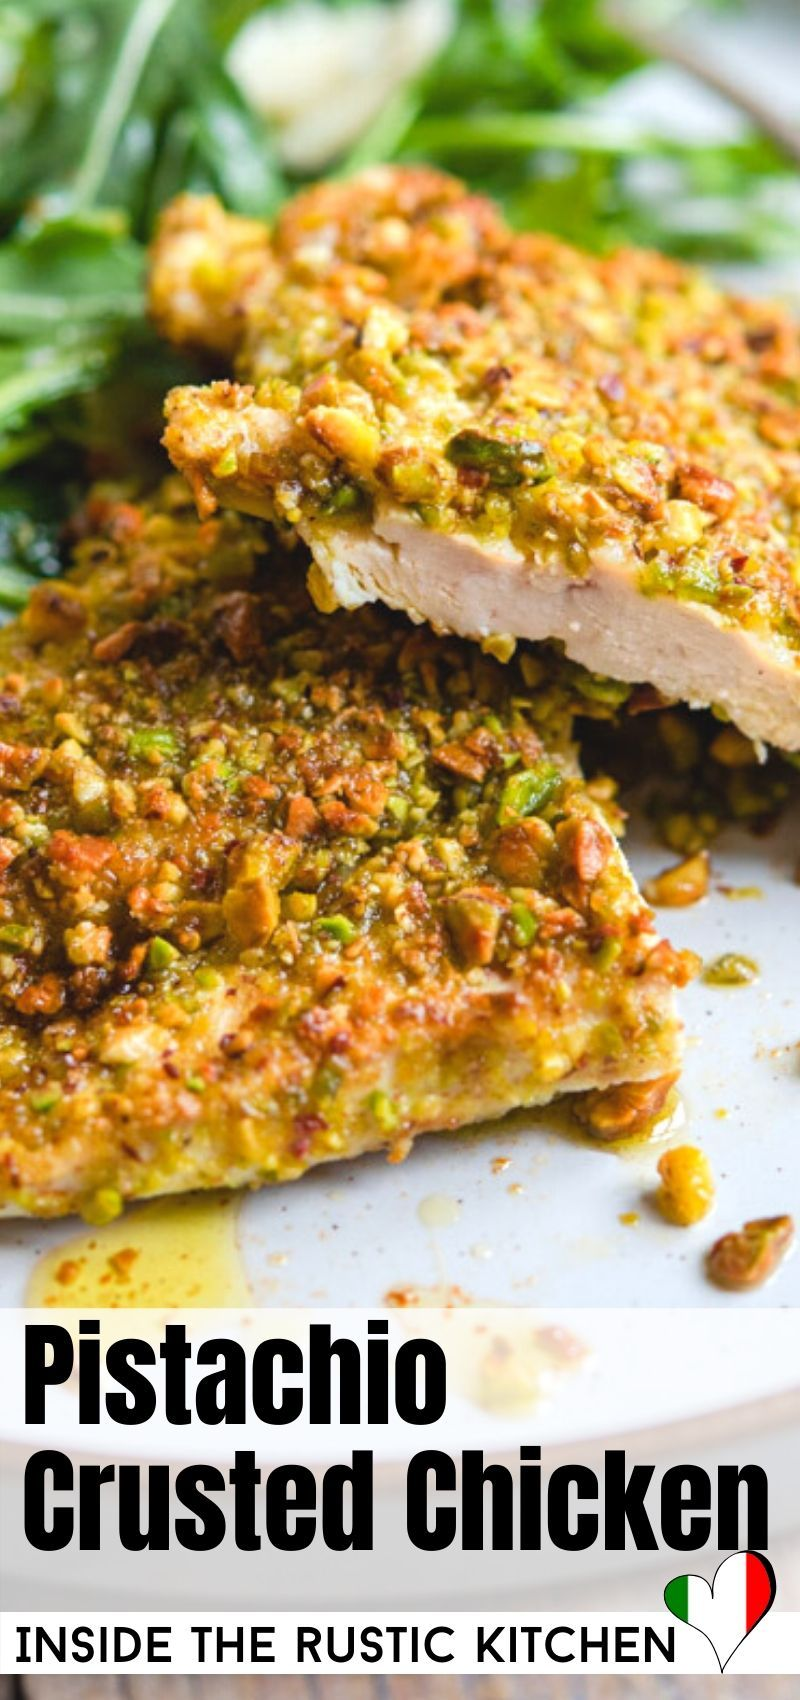 Photo of Pistachio Crusted Chicken